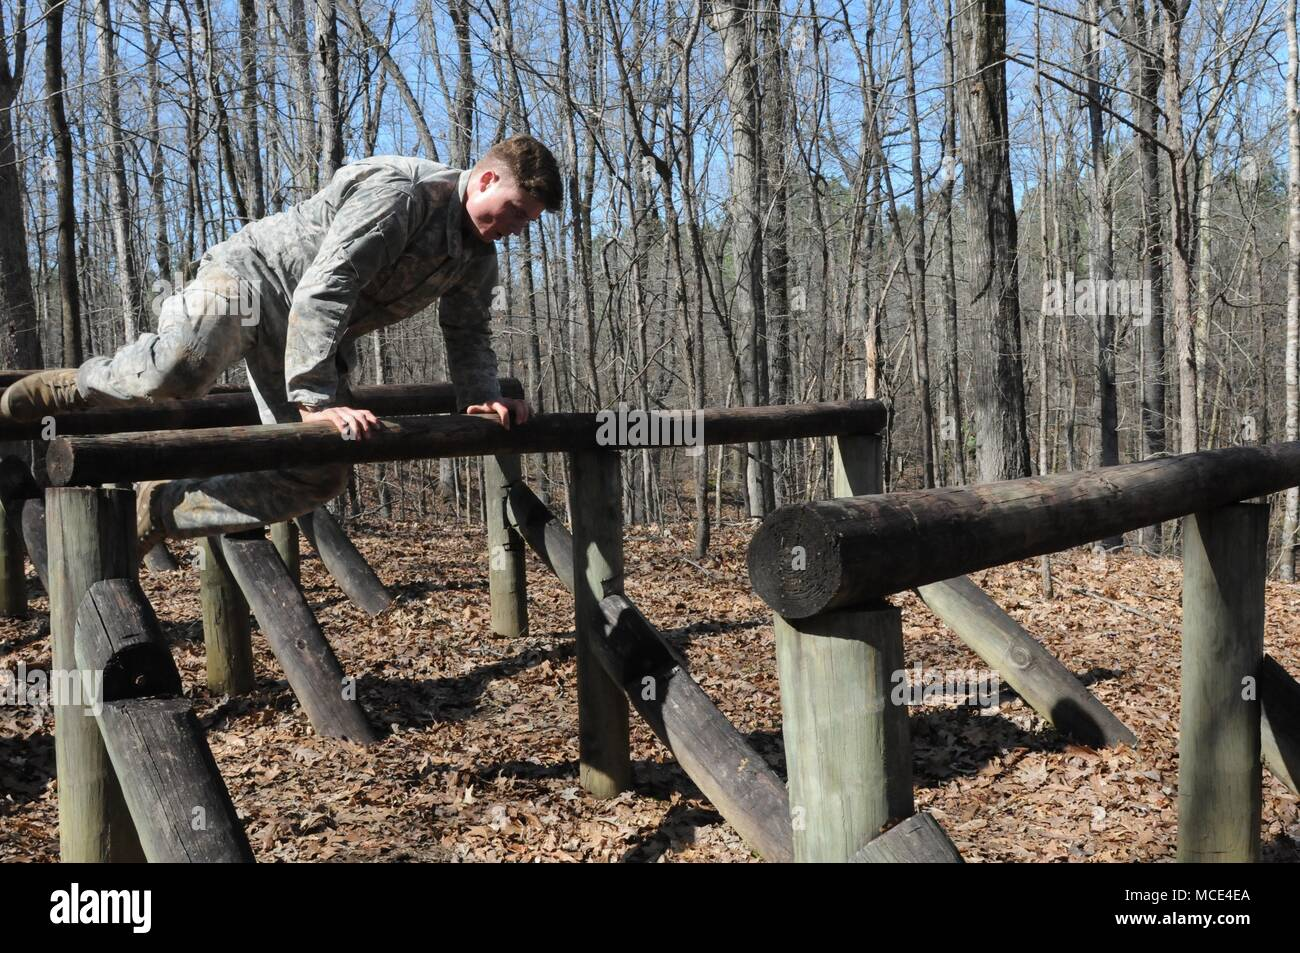 Sgt. Ethan Scott, of the 155th Armored Brigade Combat Team headquartered in Tupelo, Miss., jumps over log beams during the confidence course portion of the Mississippi National Guard 2018 Best Warrior Competition at the Camp McCain Training Center near Elliott, Miss., Feb. 27, 2018. (U.S. National Guard photo by Chelsy Ables) - Stock Image